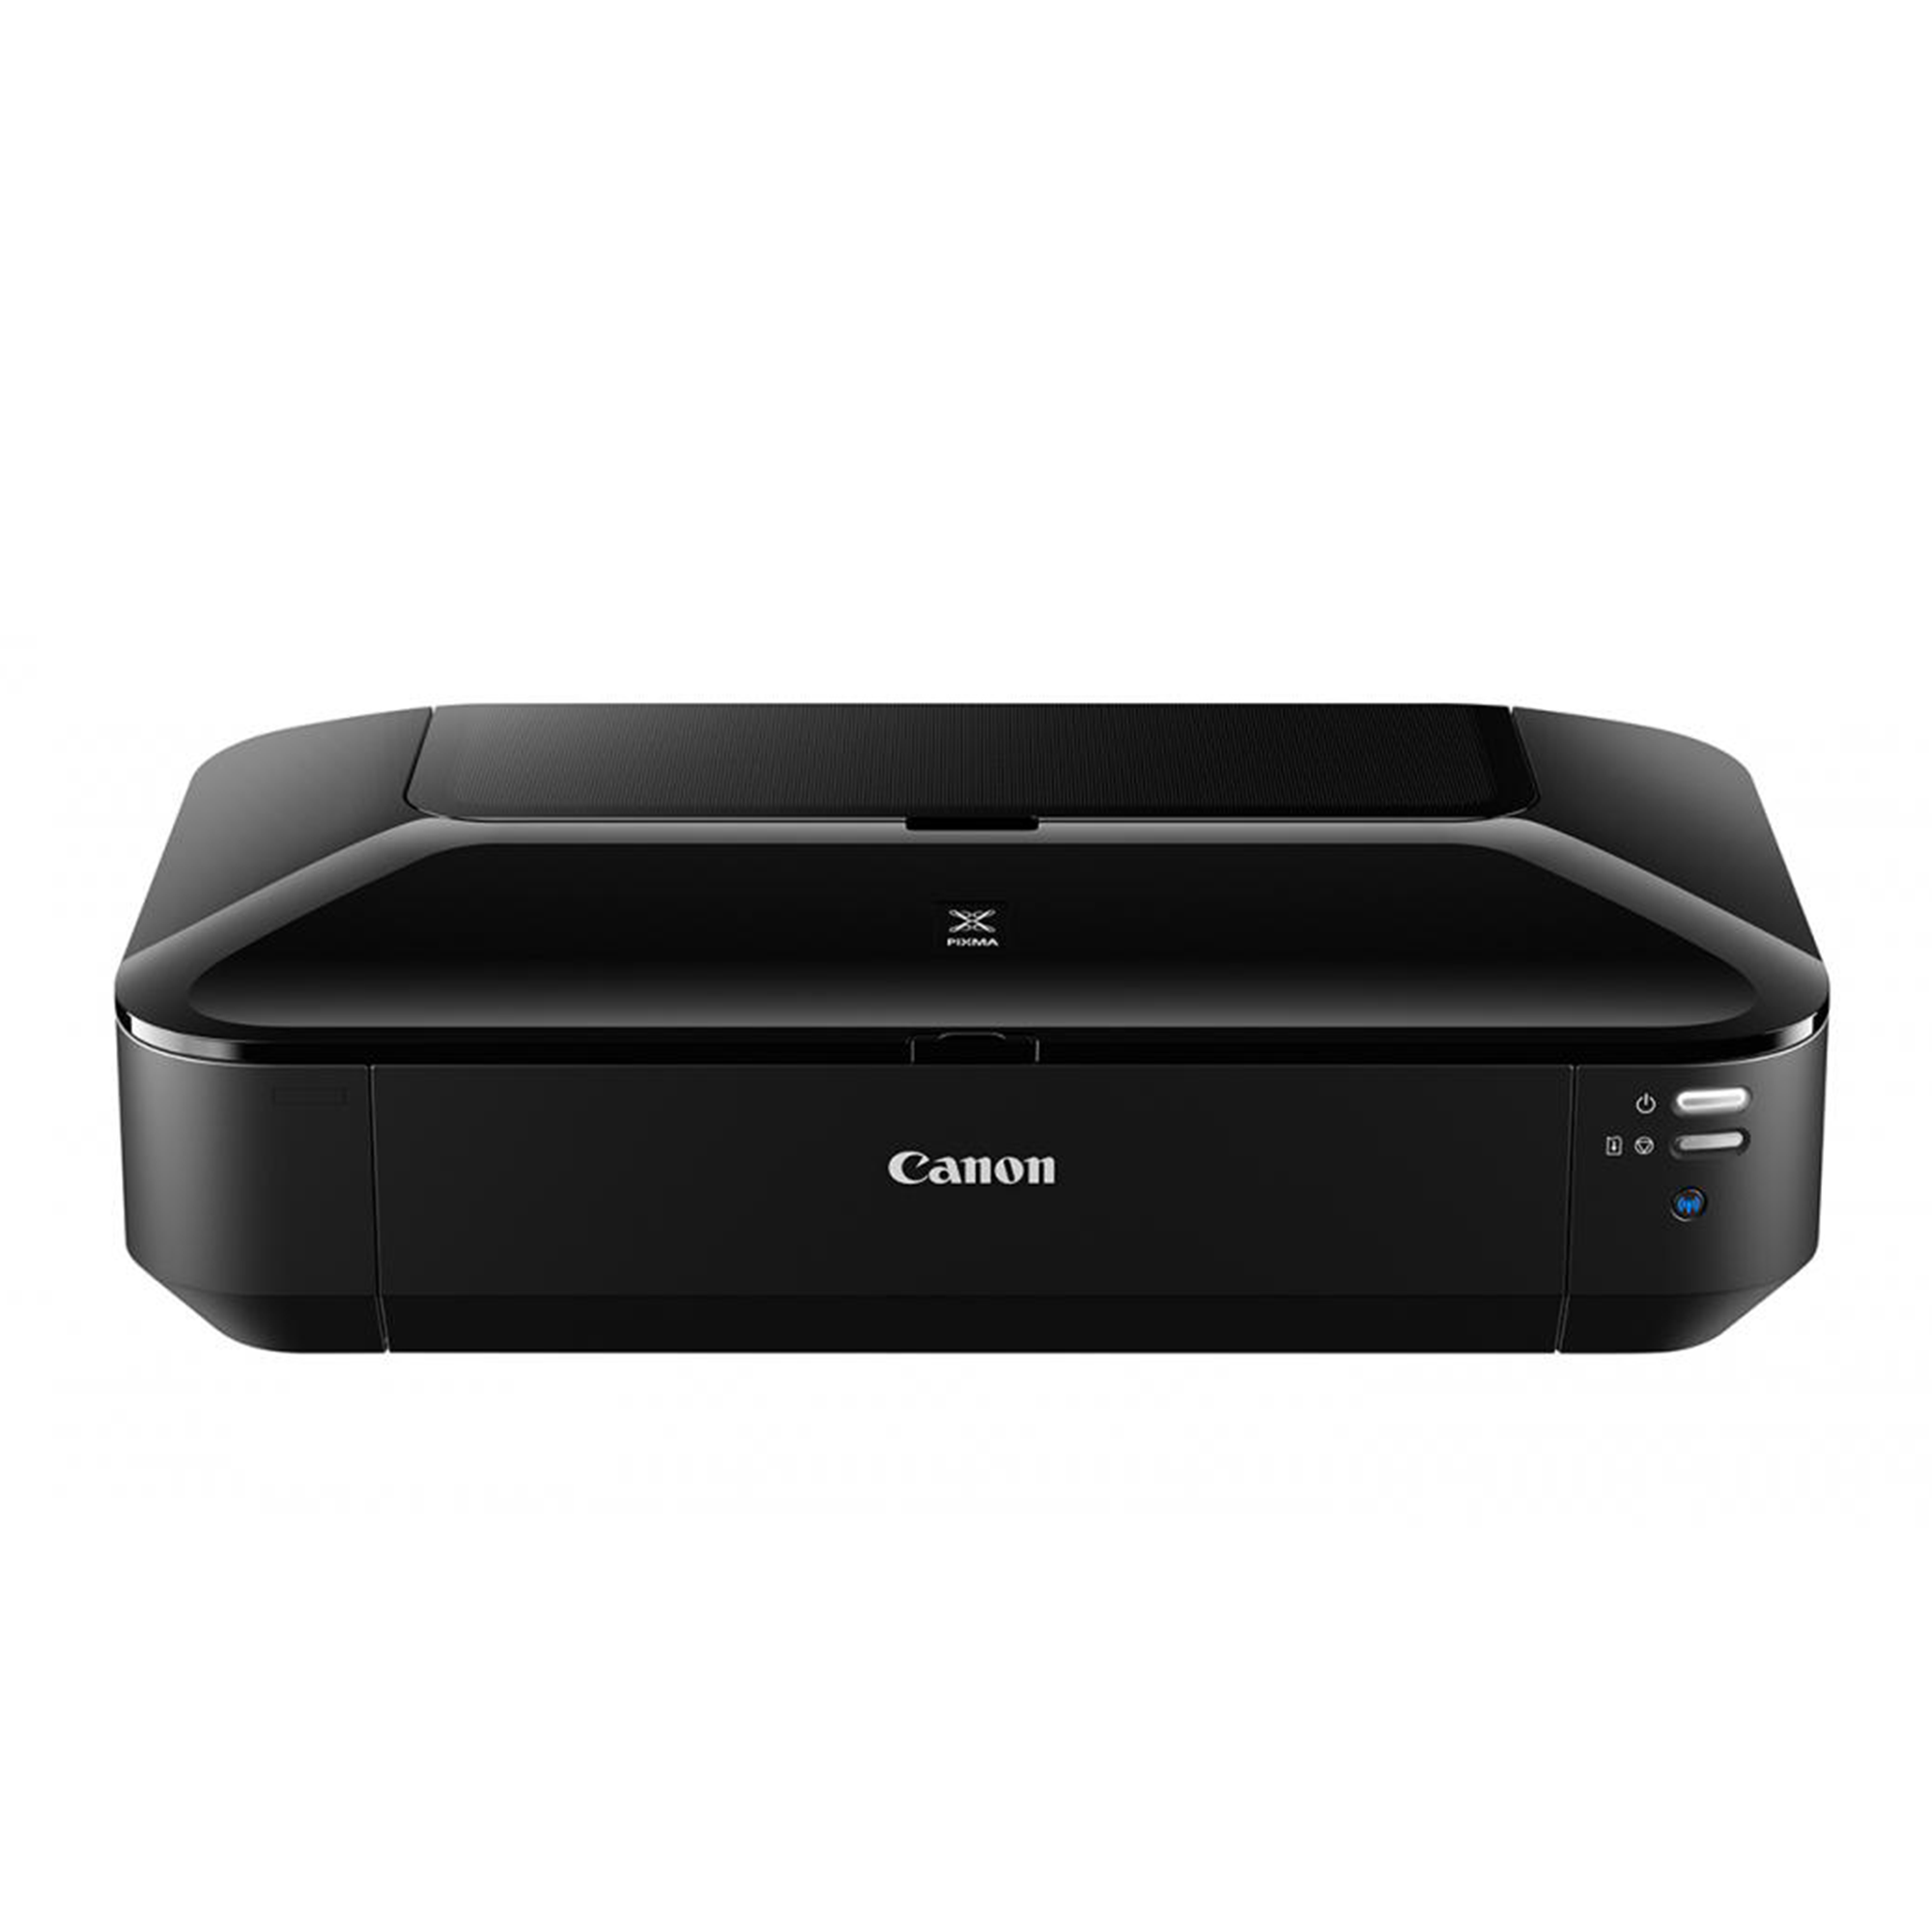 CANON PIXMA IX6840 Printer + A4 COPY PAPER FREE GIFT